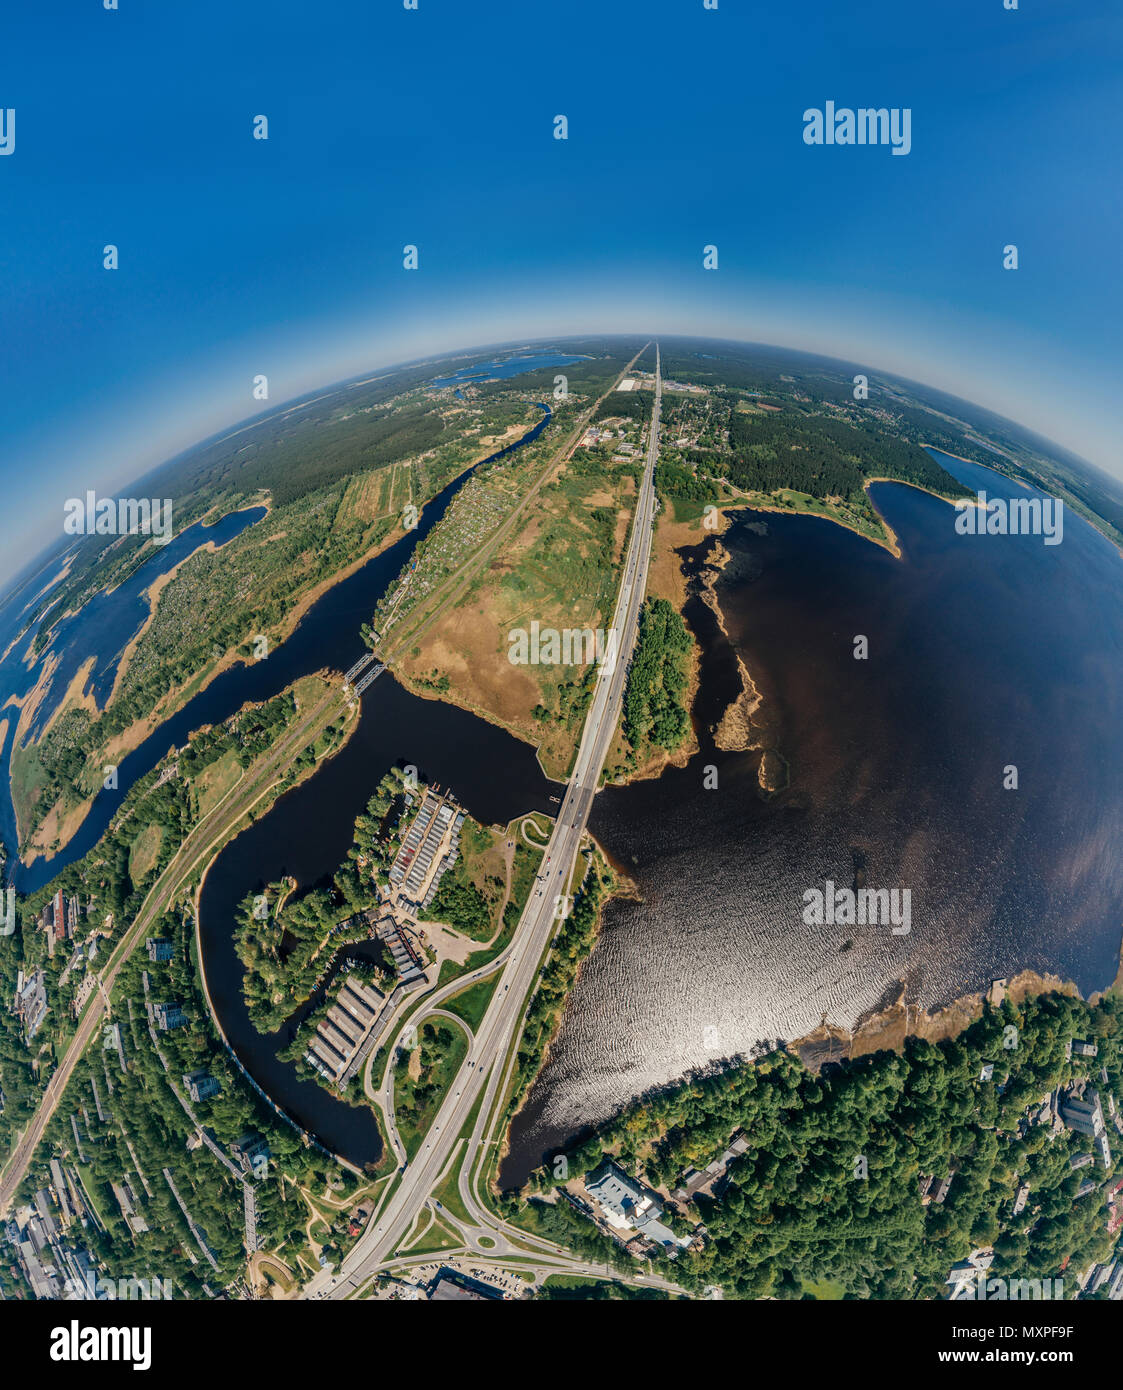 Summer Lake and roads in Riga city and Latvia nature 360 VR Drone picture for Virtual reality, Panorama - Stock Image